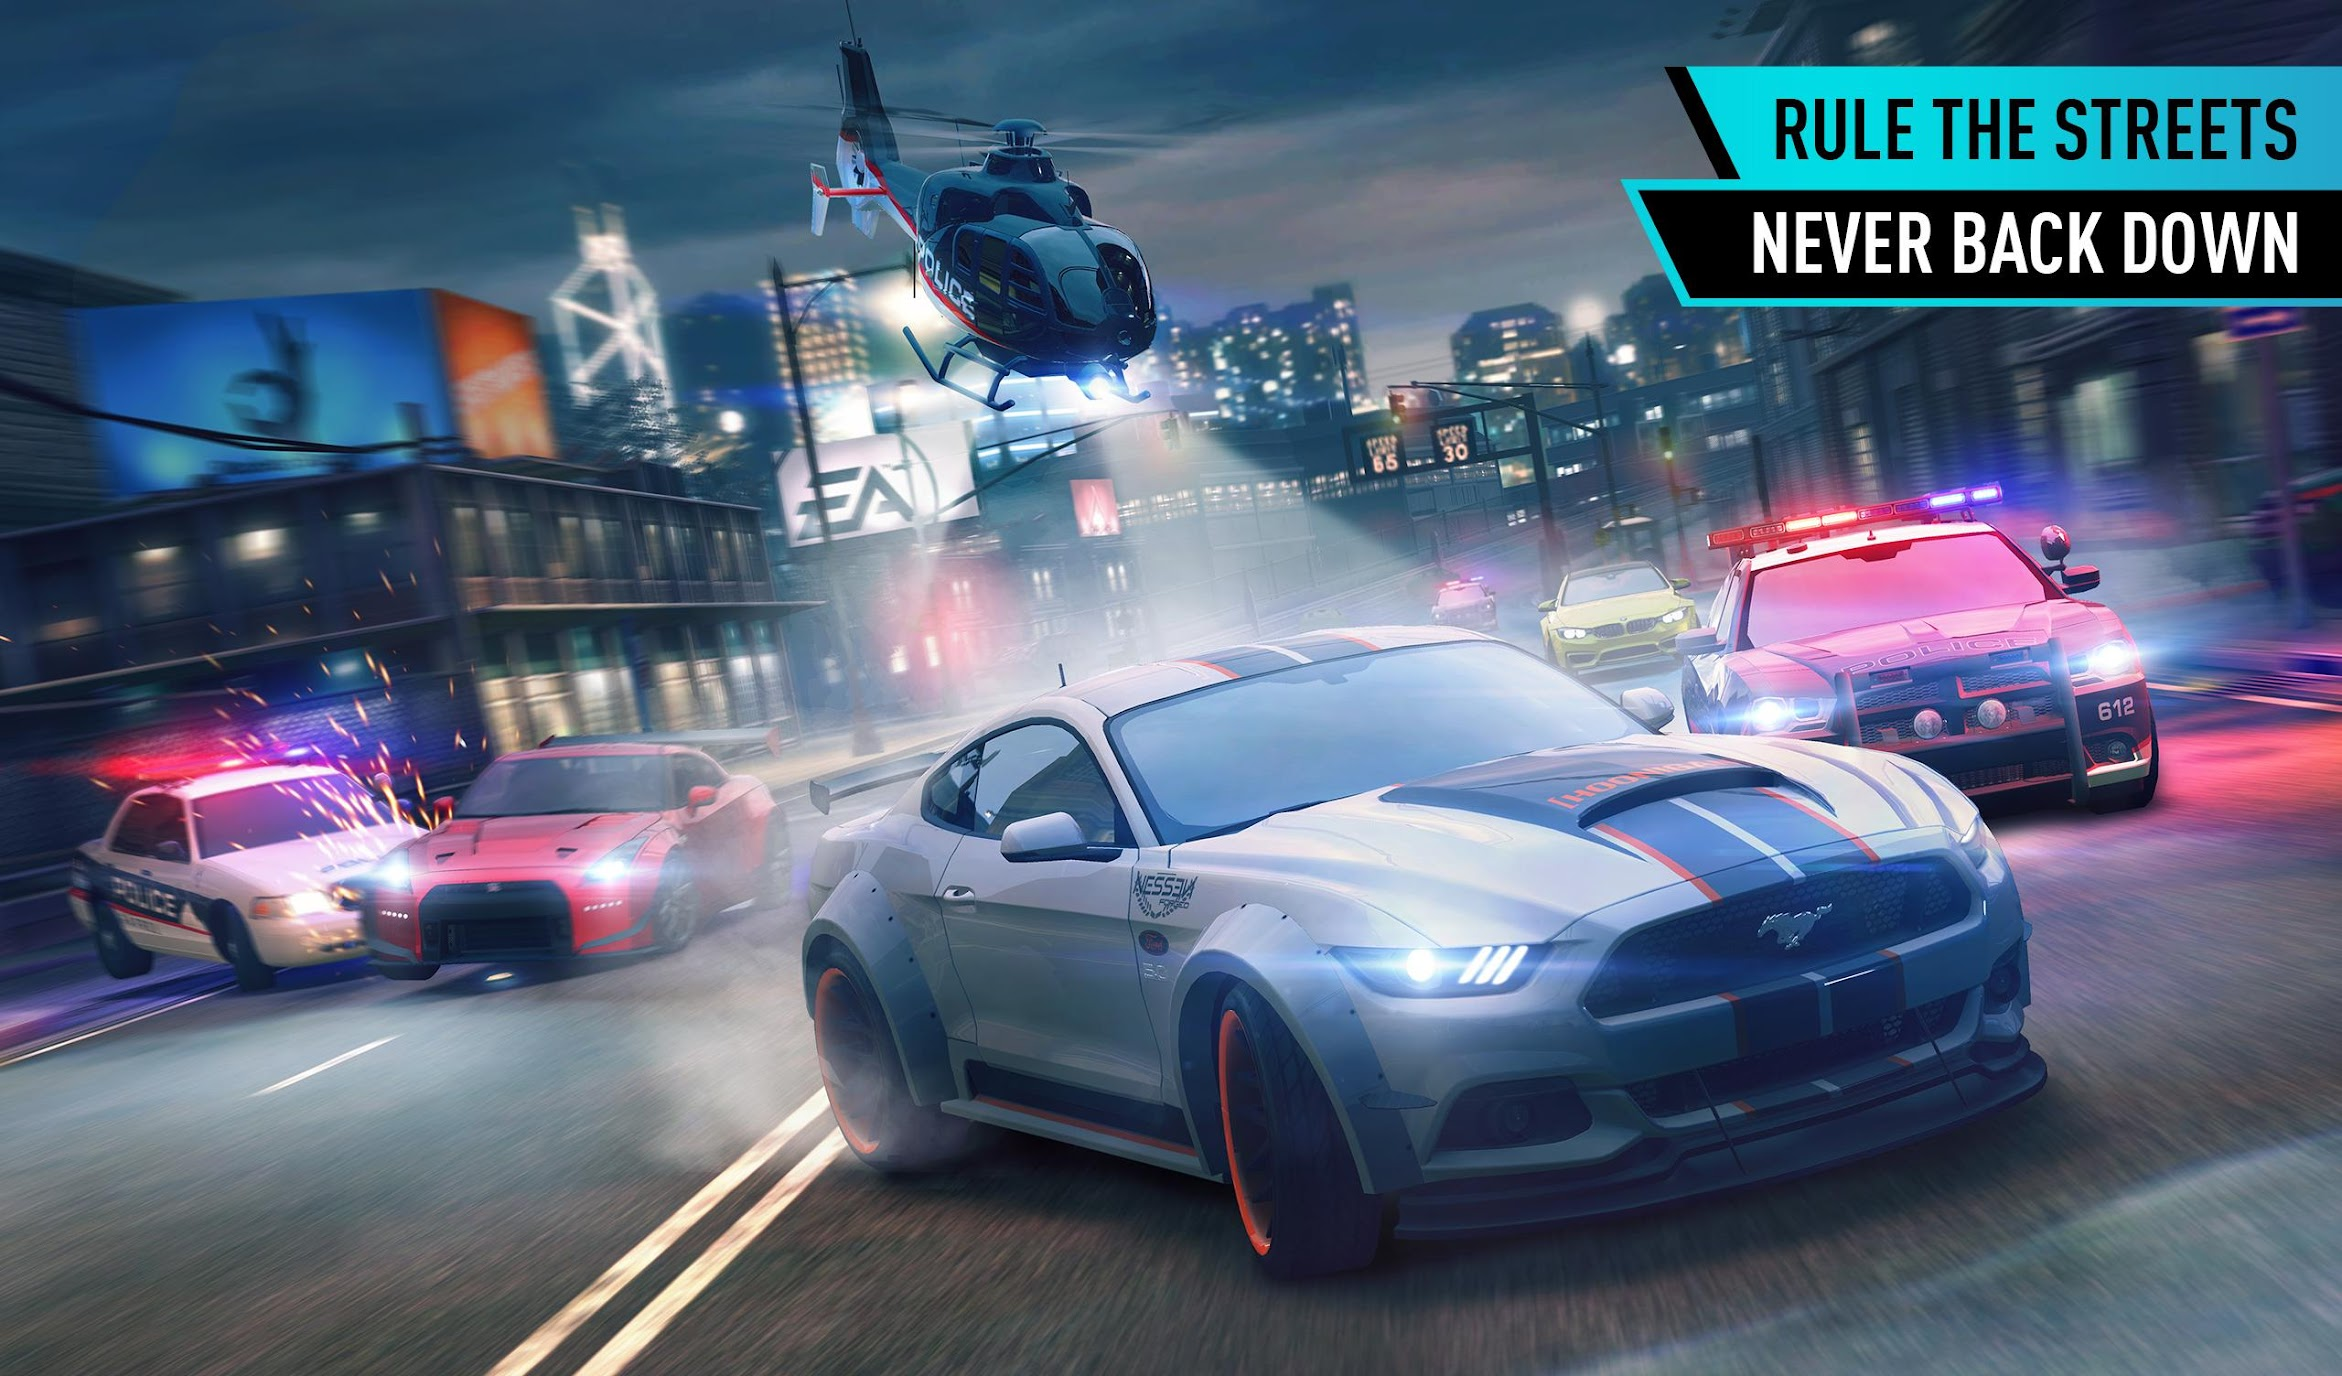 Need for Speed No Limits Mod apk (Unlimited Money/Unlocked All) GPU 1